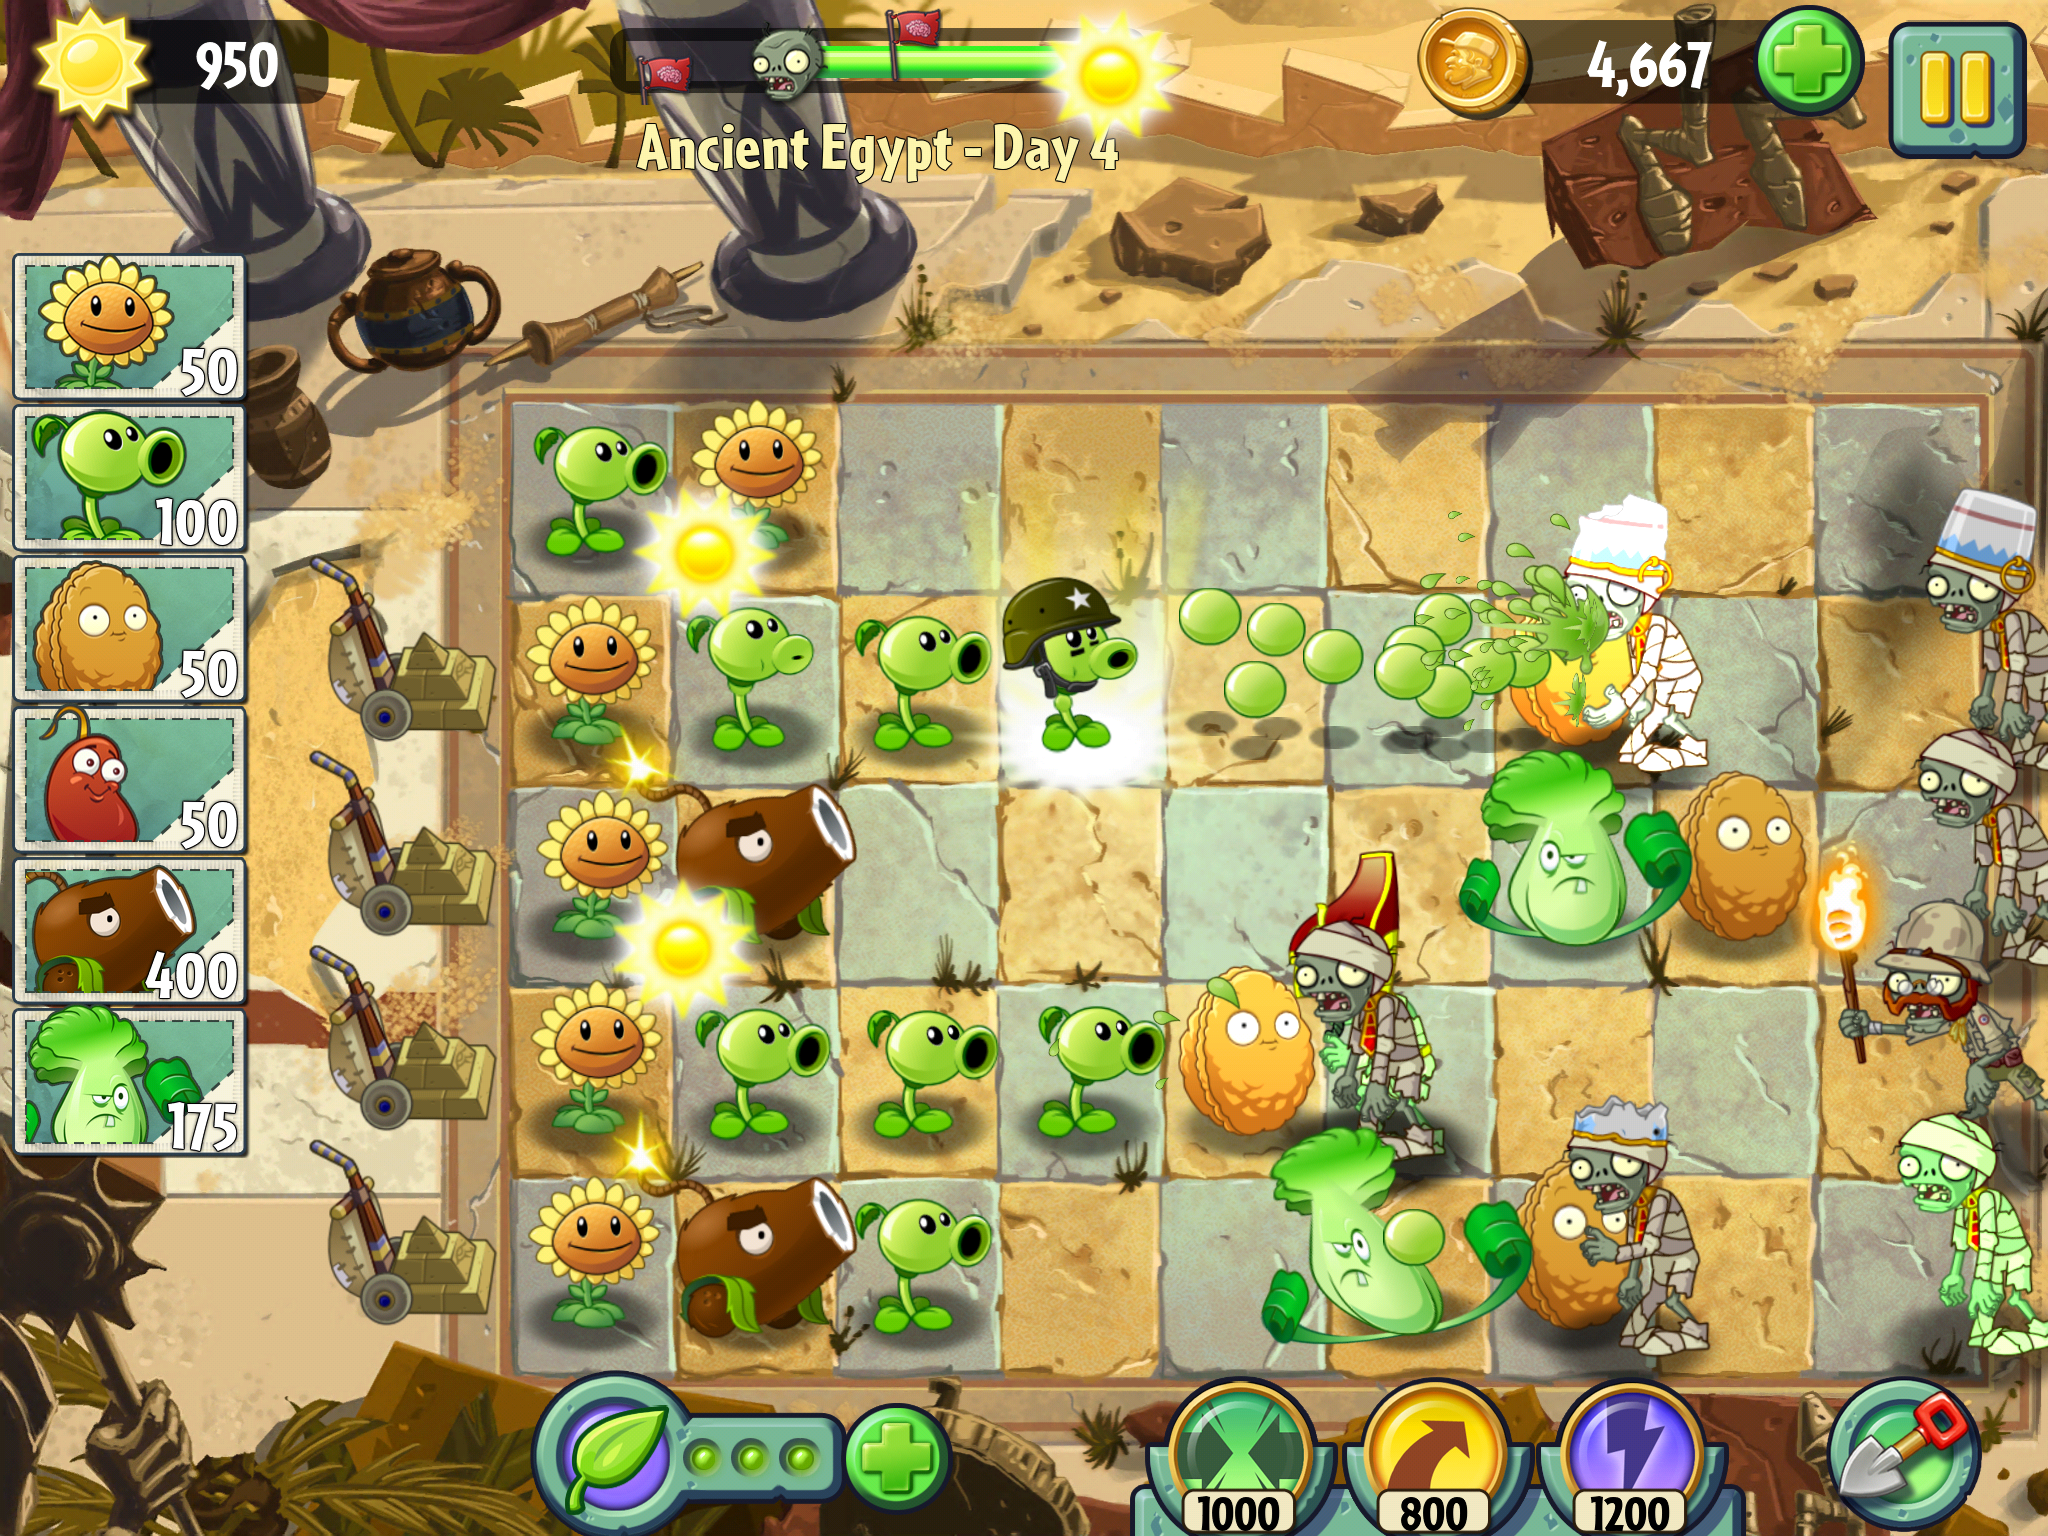 Why I'm Not Playing Plants vs. Zombies 2 | USgamer